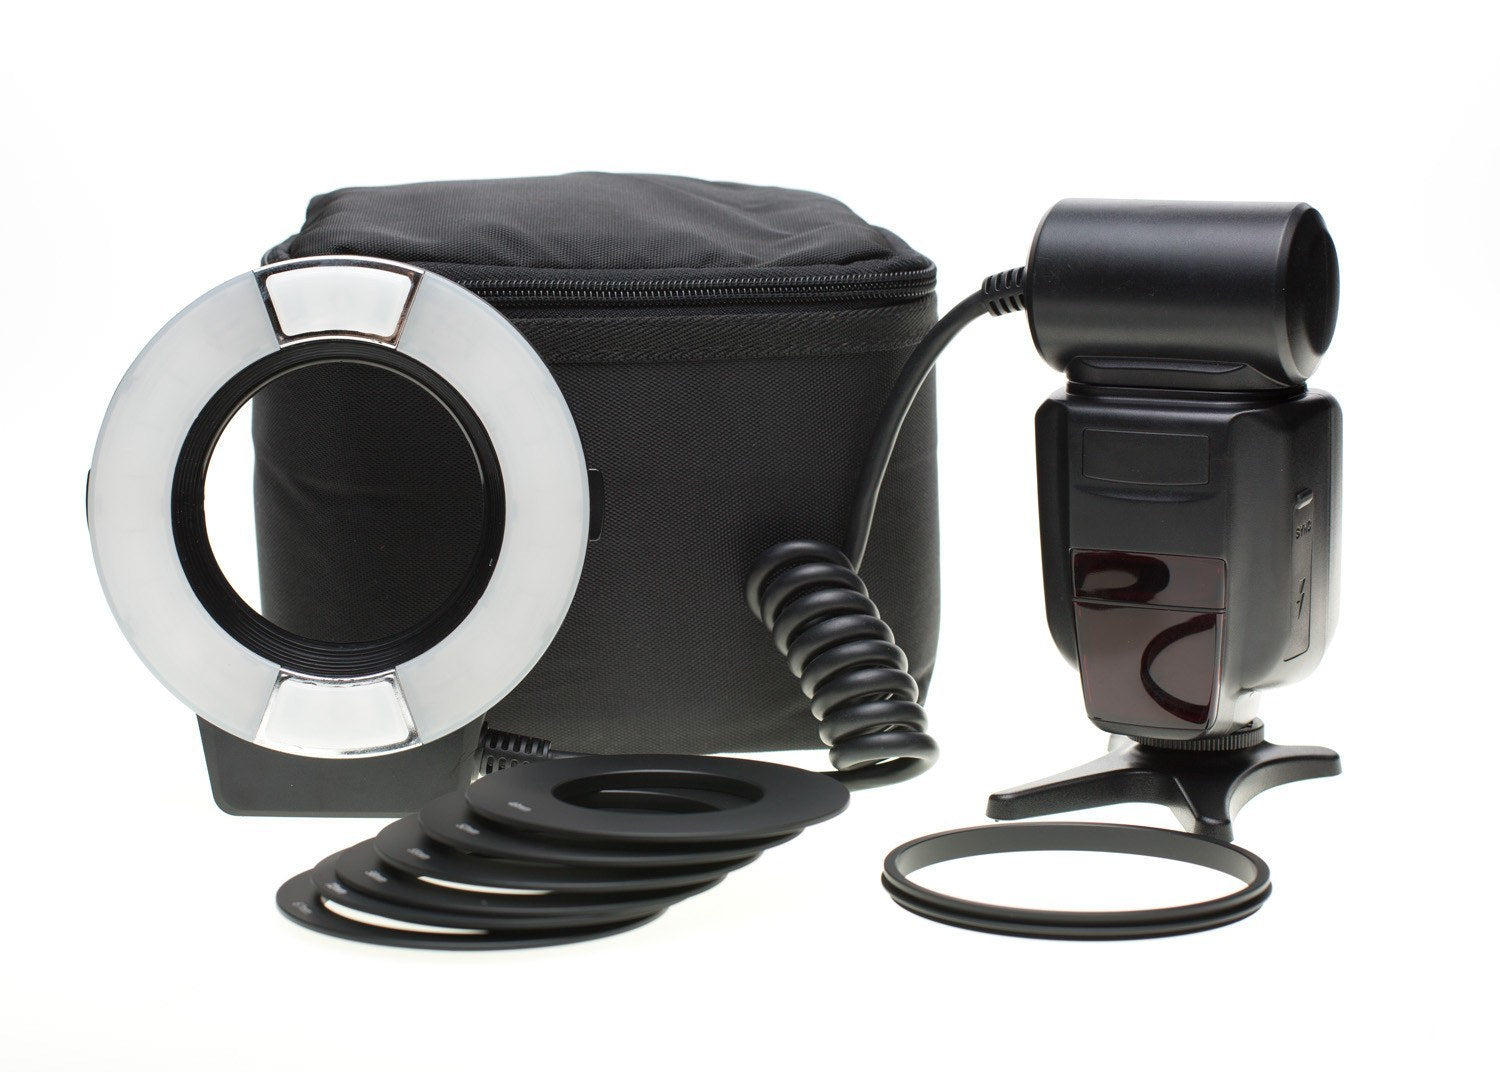 StudioPRO TTL Macro Ring Flash Light for Canon -  - 2